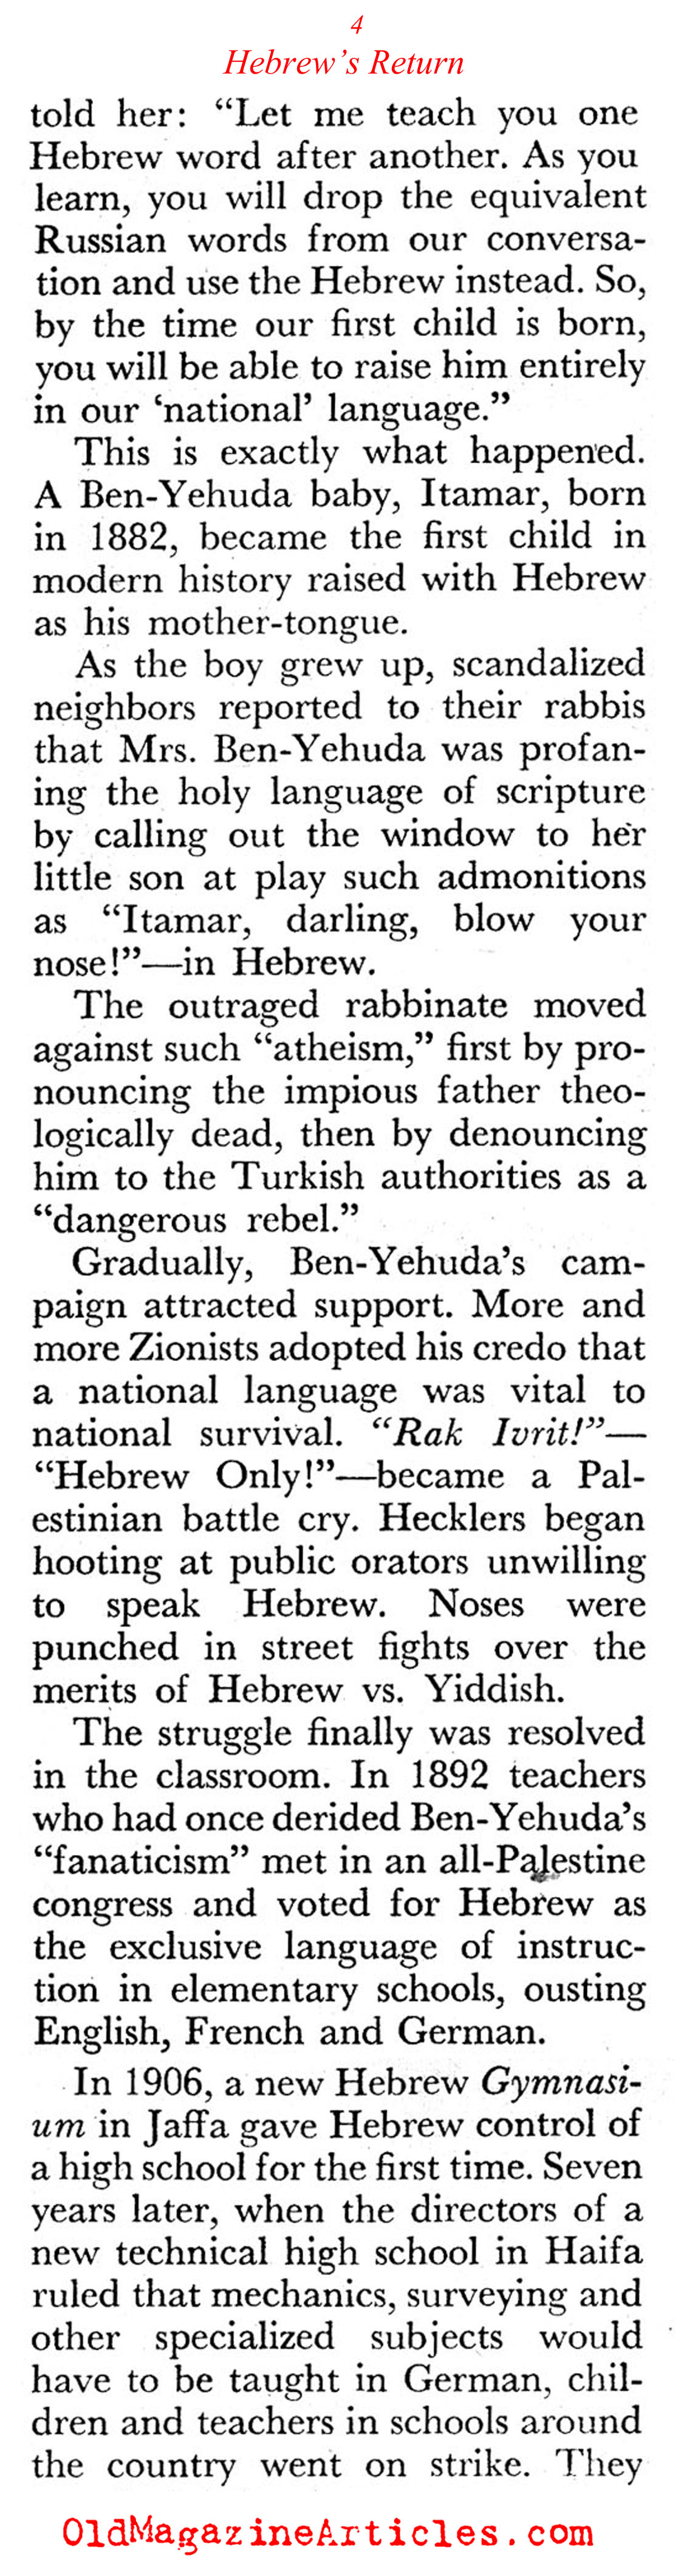 Adapting Hebrew for the Modern Age (Coronet Magazine, 1960)